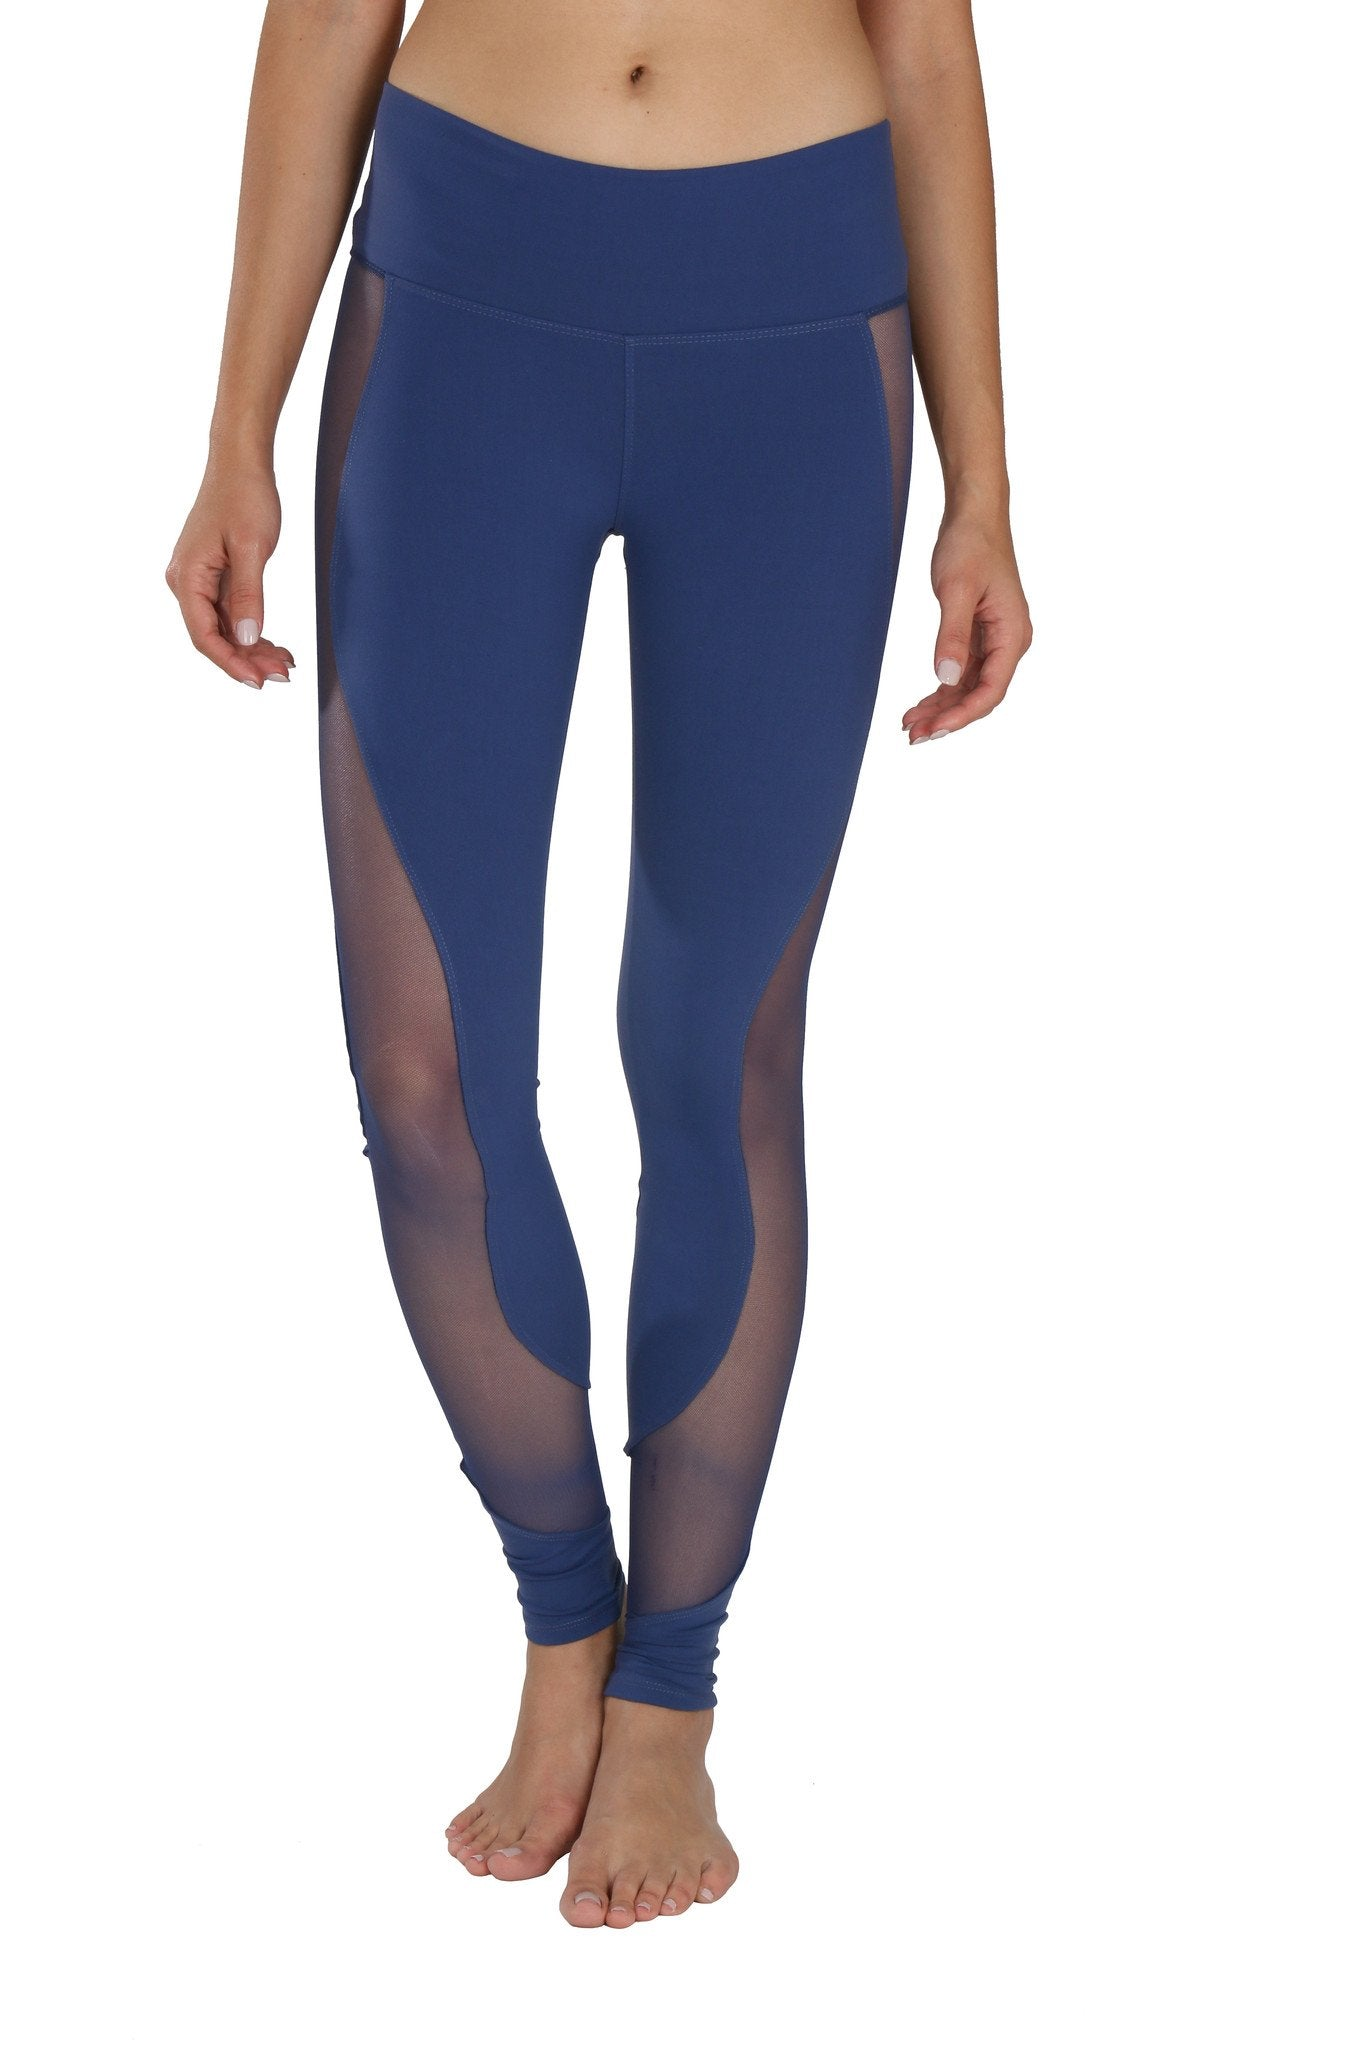 Lululemon Leggings With Mesh on Side